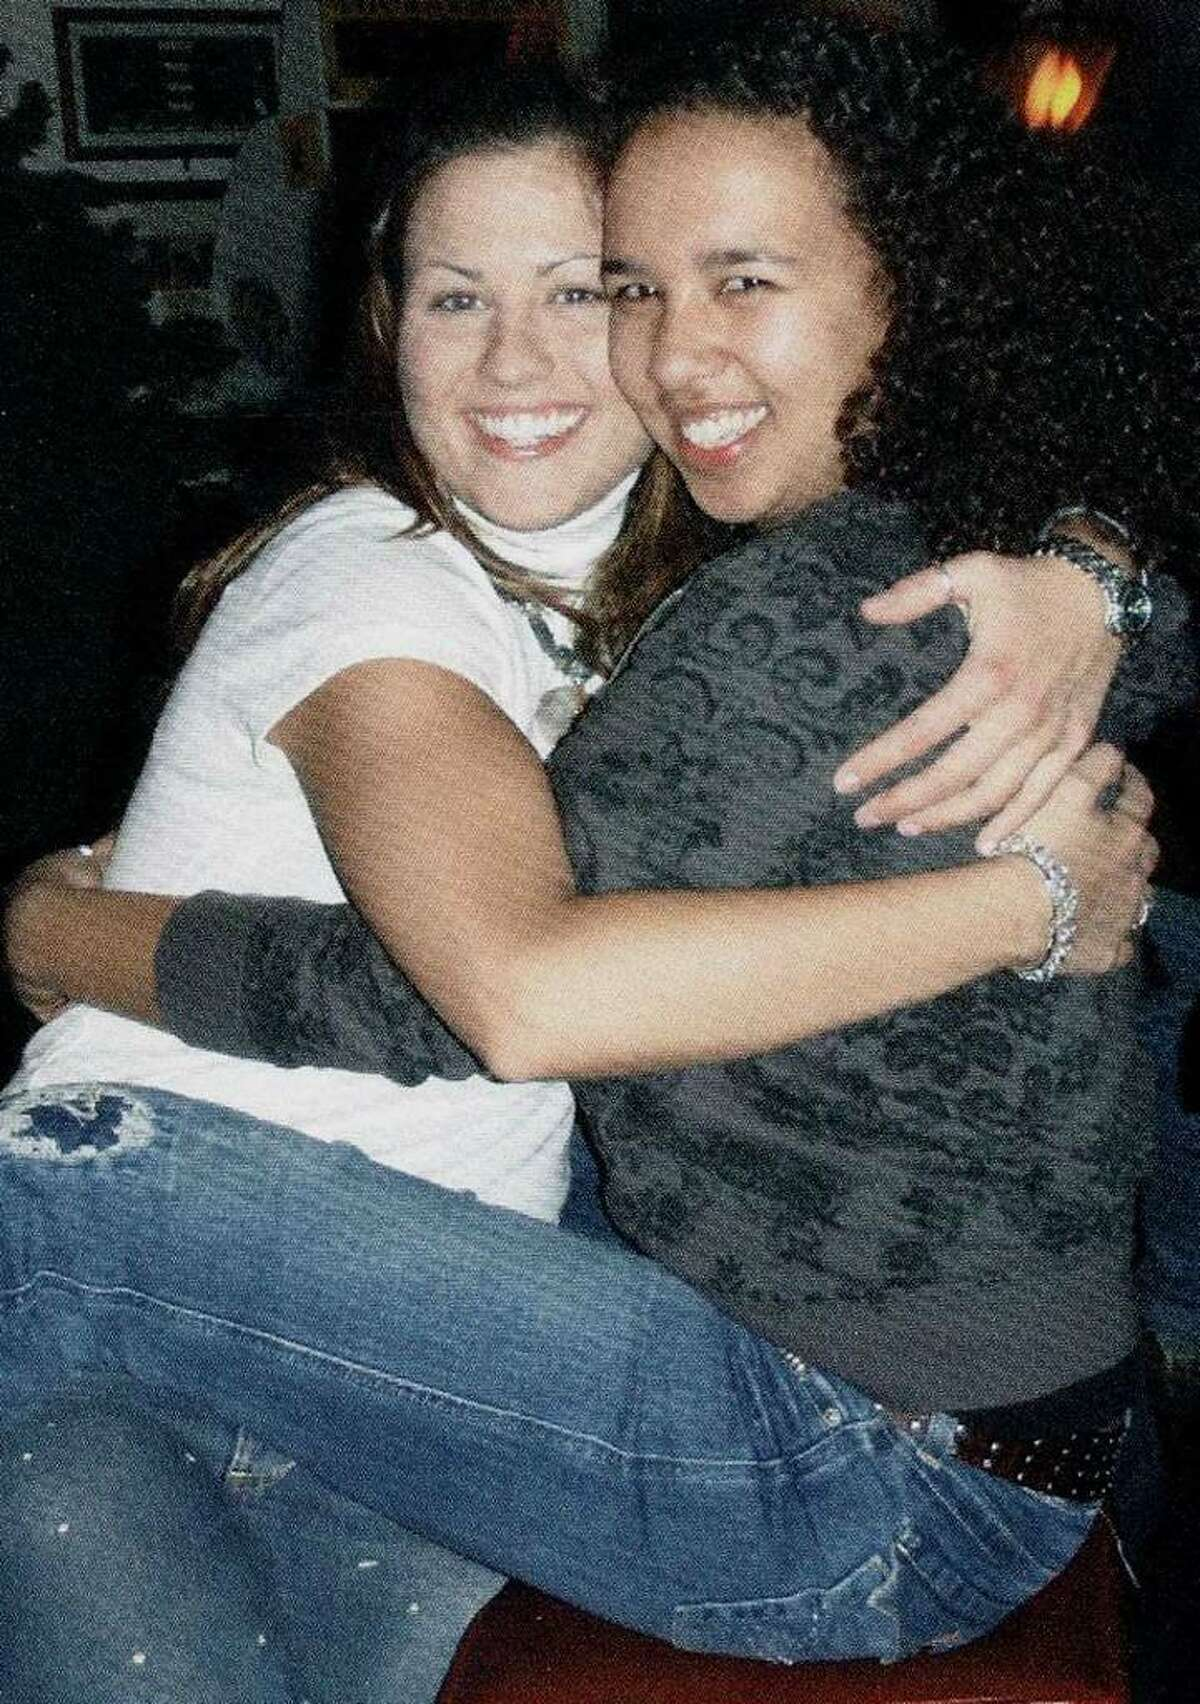 Rebecca Payne, right, of New Milford, died May 20, 2008 in Boston in an as yet unsolved homicide. Payne is shown with friend Lauren Ziaks. Courtesy of the Payne family